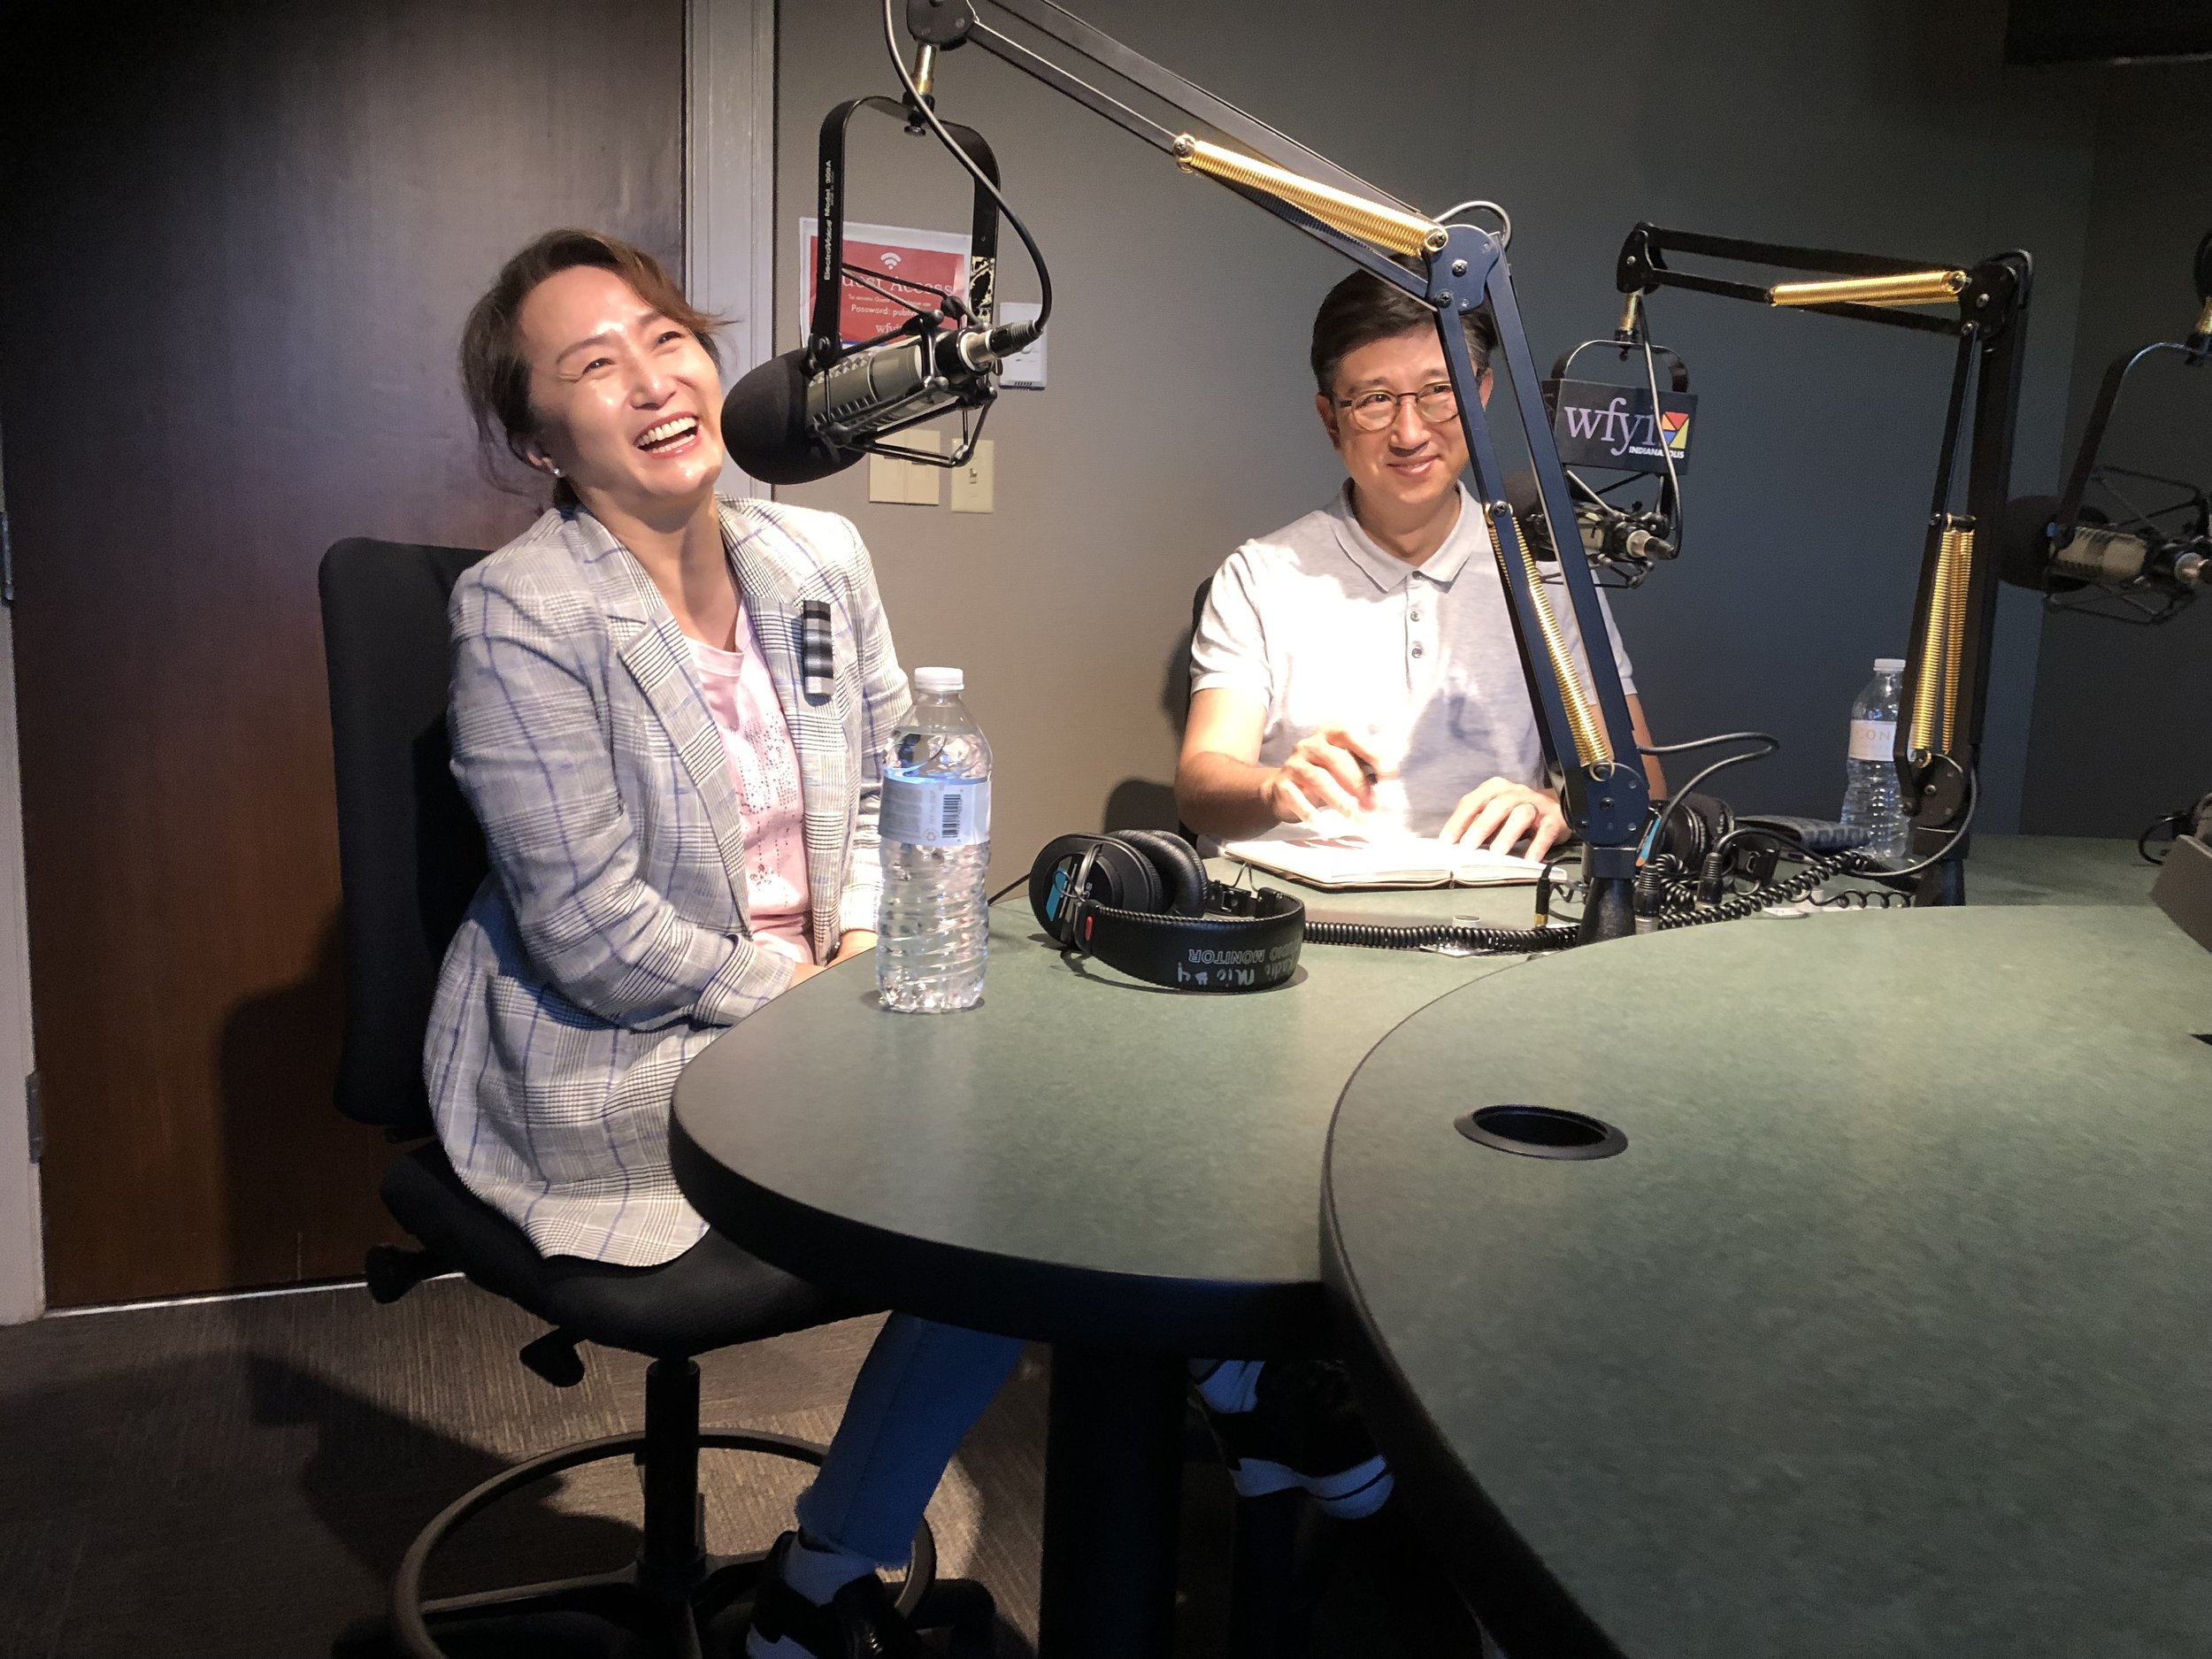 Cha Jong Rye and Stephen interview at WFYI